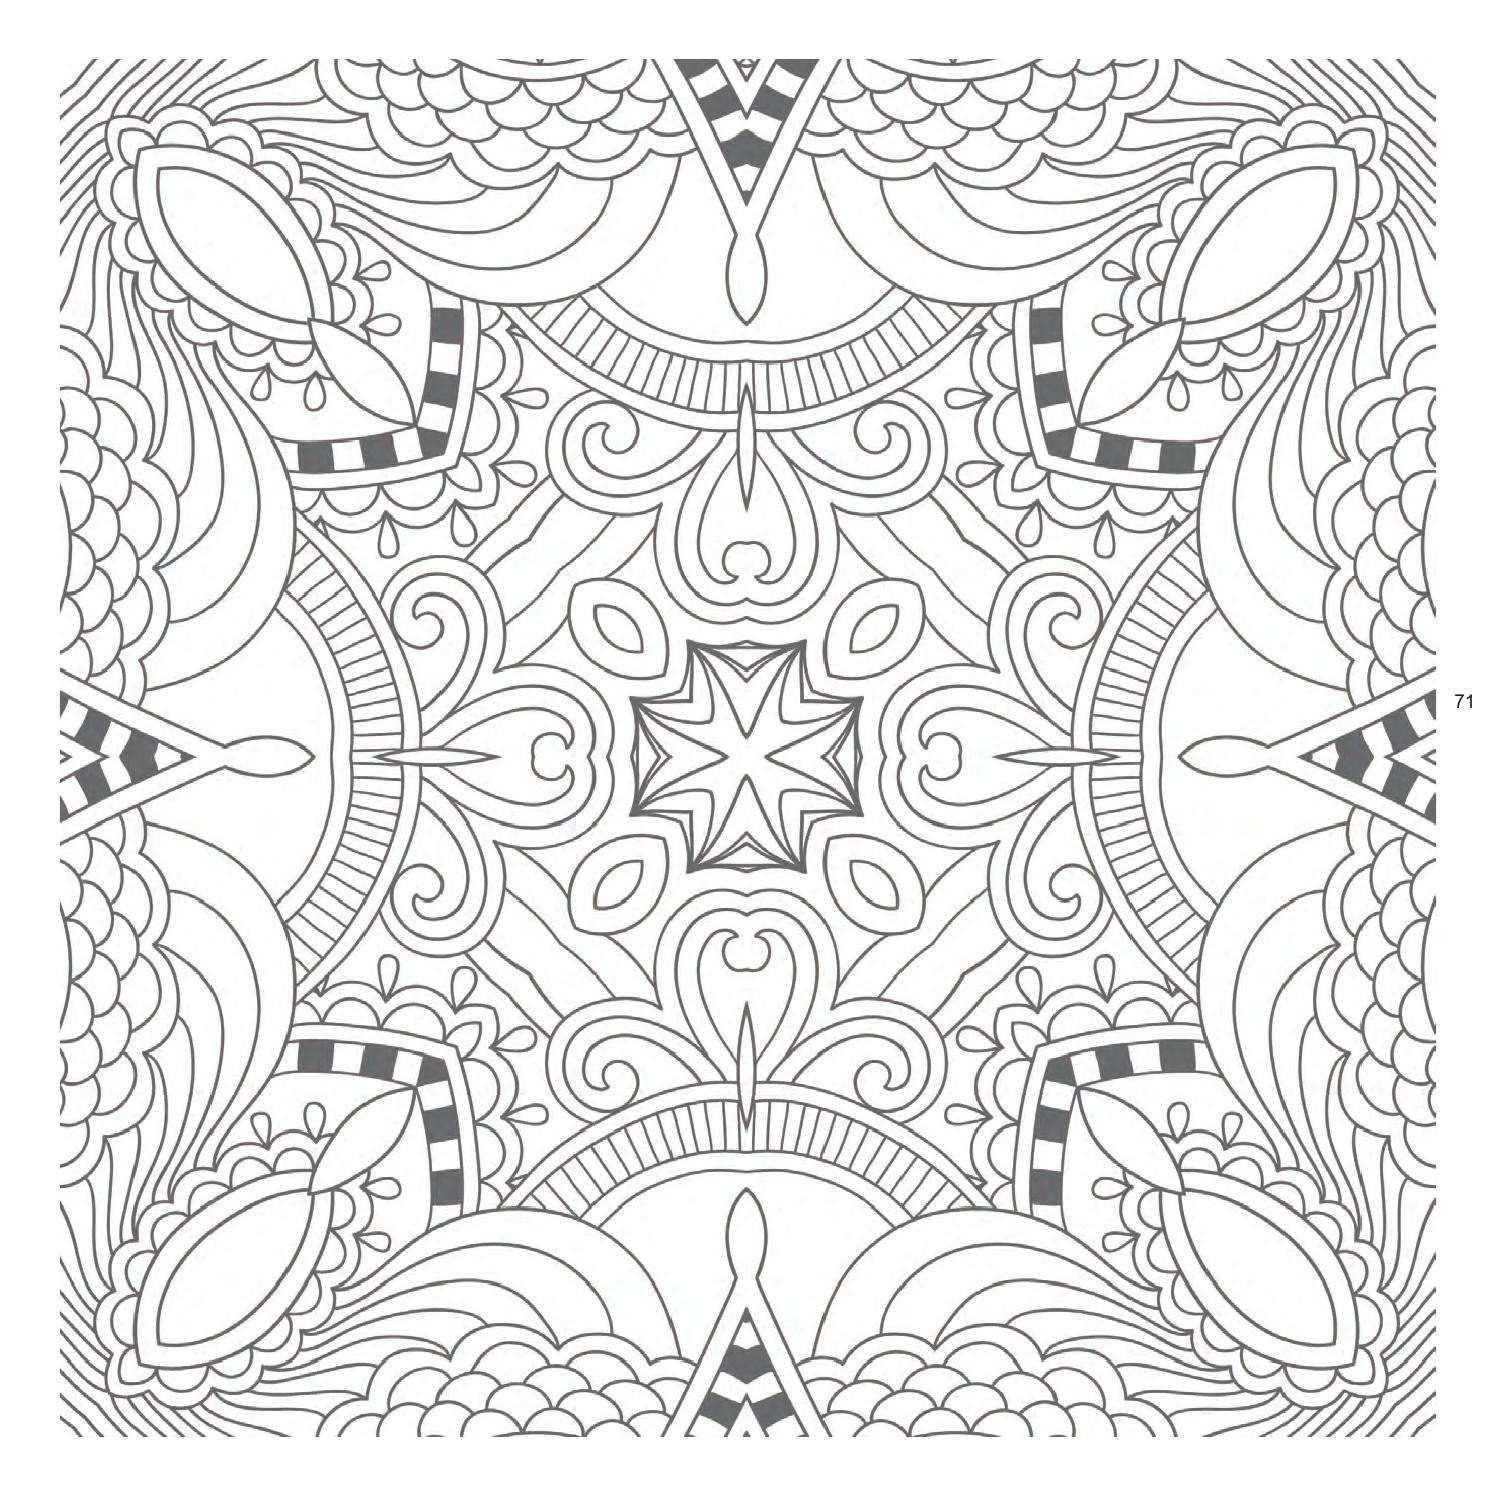 Free Mandala Coloring Pages Free Mandala Coloring Pages For Adults Unique Celtic Coloring Pages